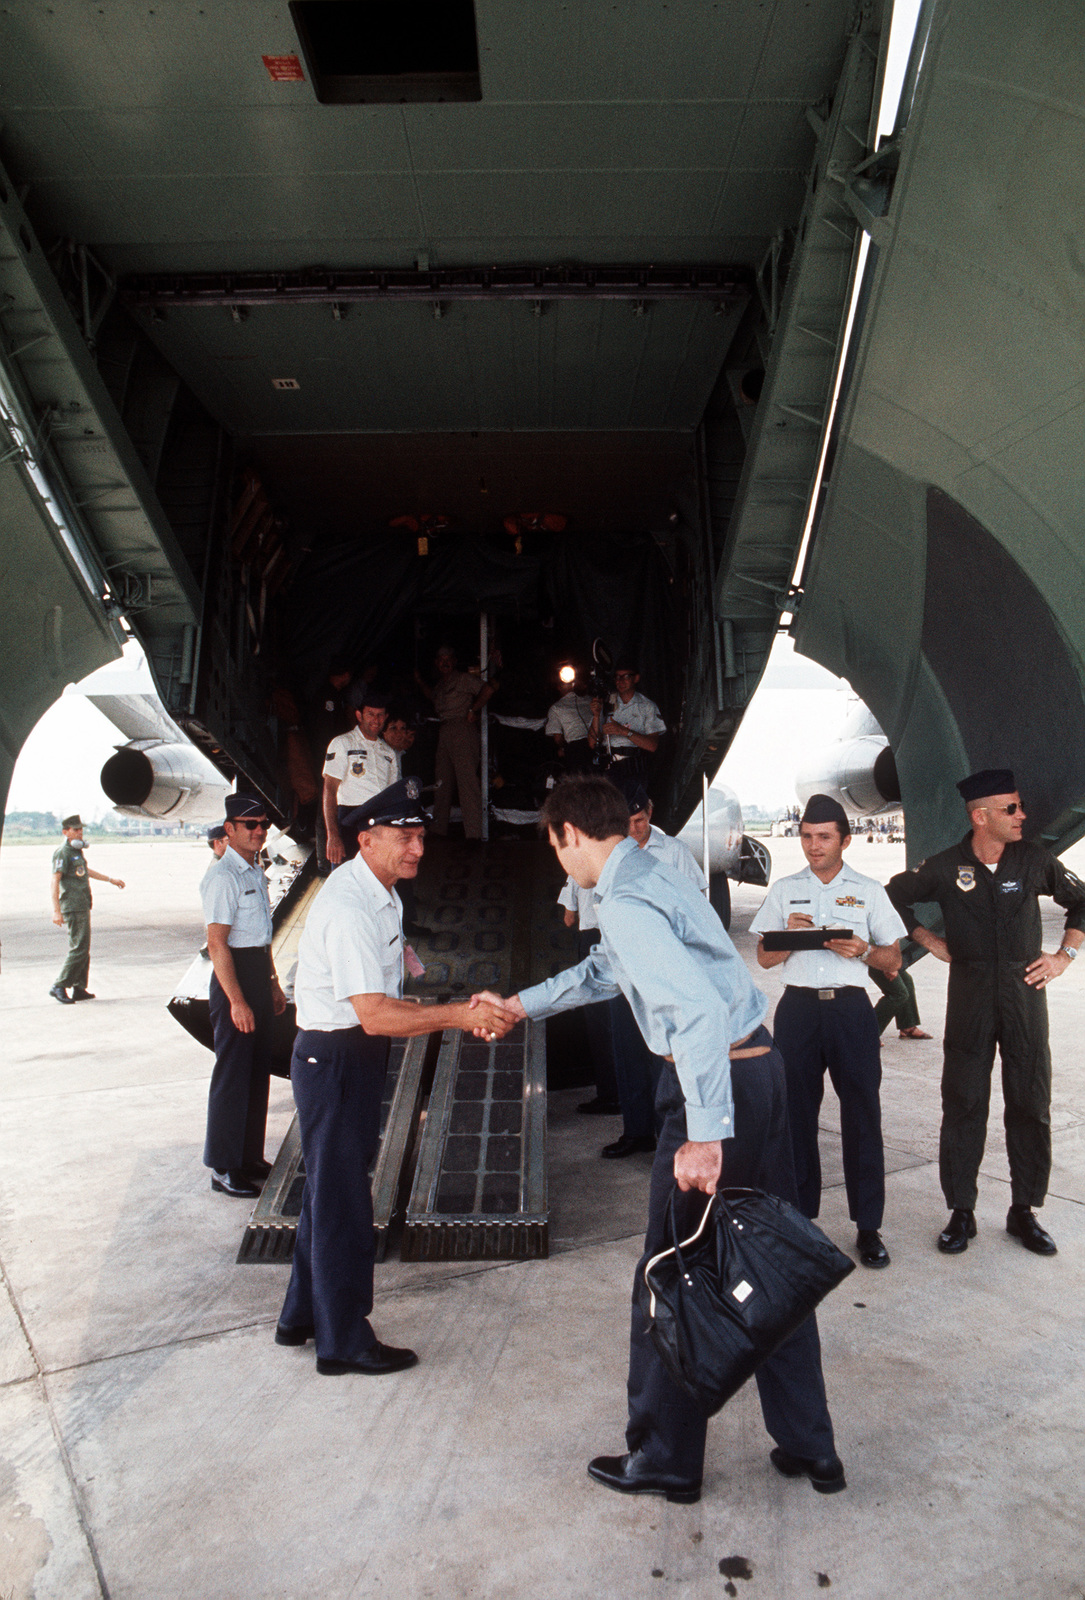 A C-141 Starlifter aircraft crew greets COL Jackolick, recently released prisoner of war. COL Jackolick will board the aircraft for evacuation to Clark Air Base, Republic of the Philippines